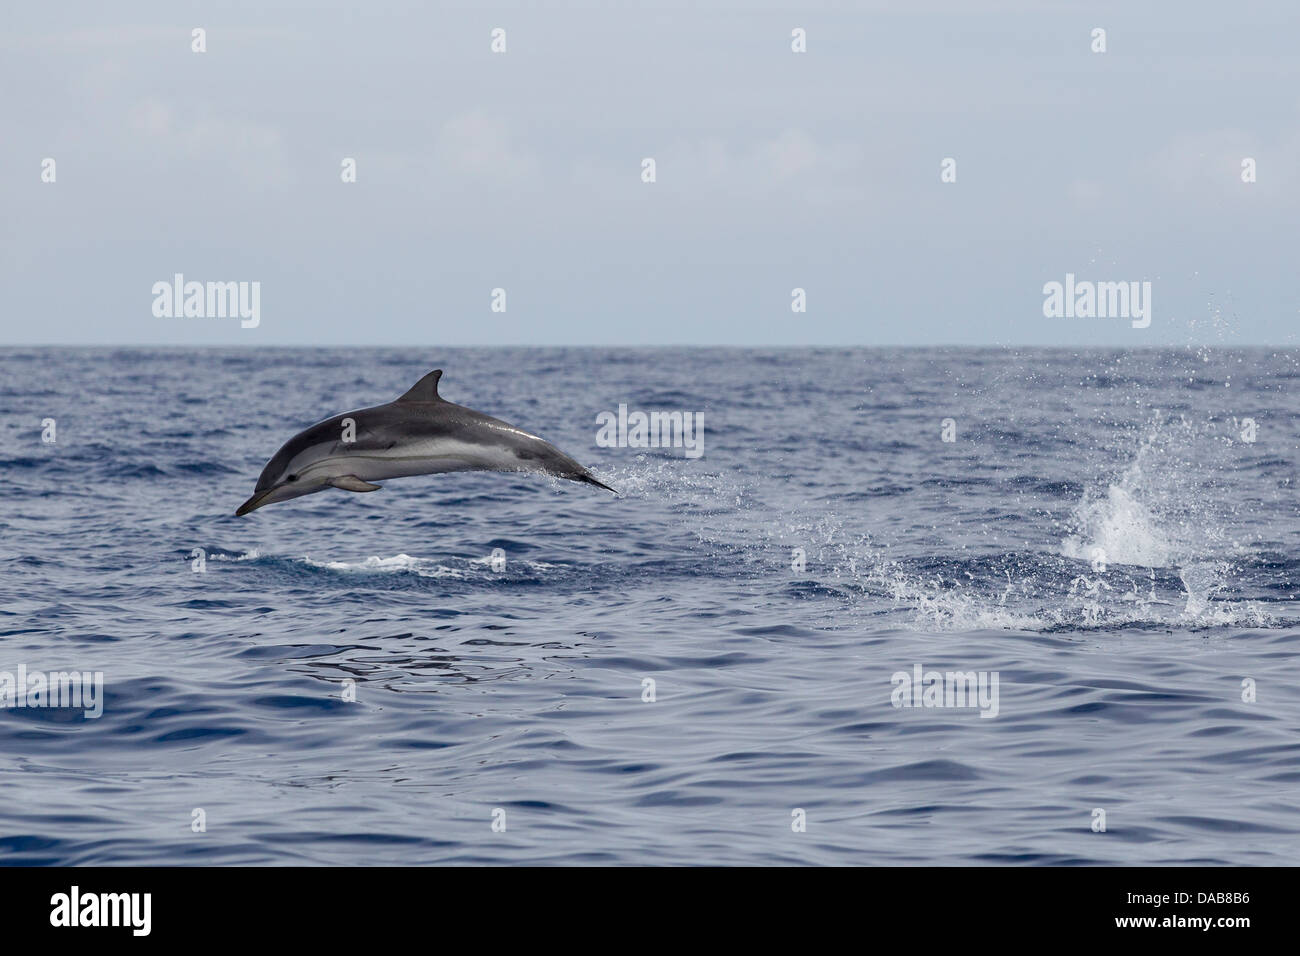 Striped Dolphin, Stenella coeruleoalba, Blau-weißer Delphin, leaping high, fast swimming dolphin, Lajes do - Stock Image